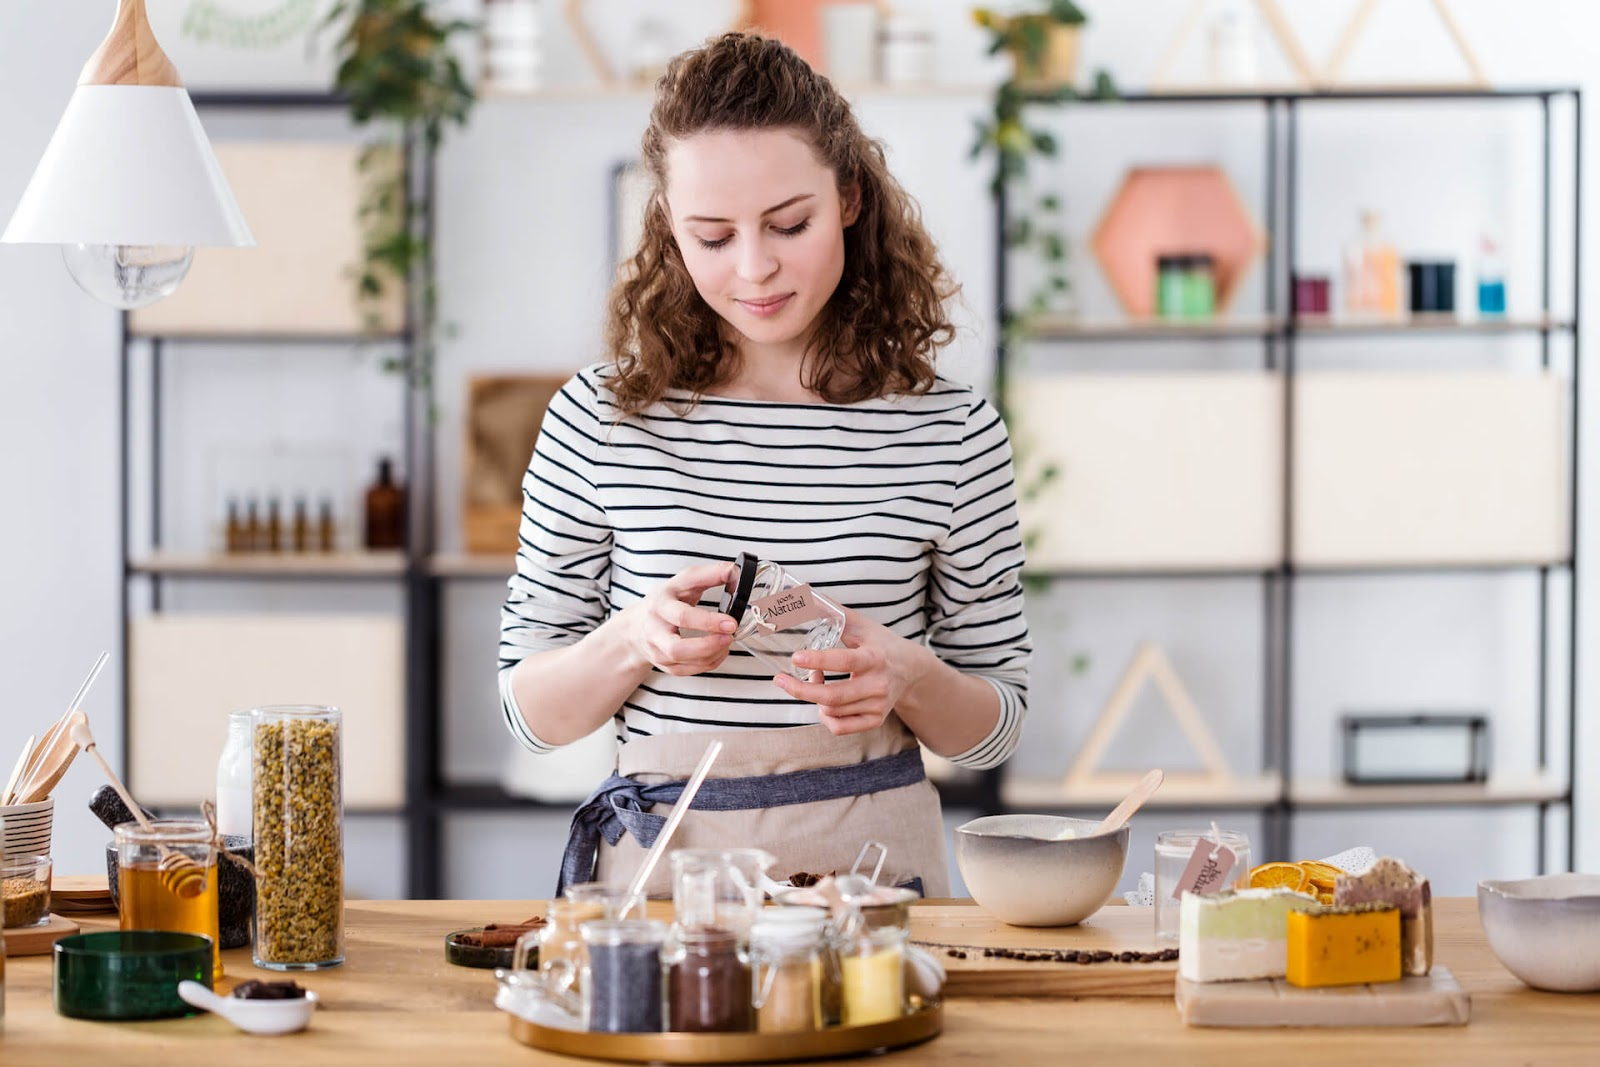 Woman making some homemade beauty products as a hobby in her living room